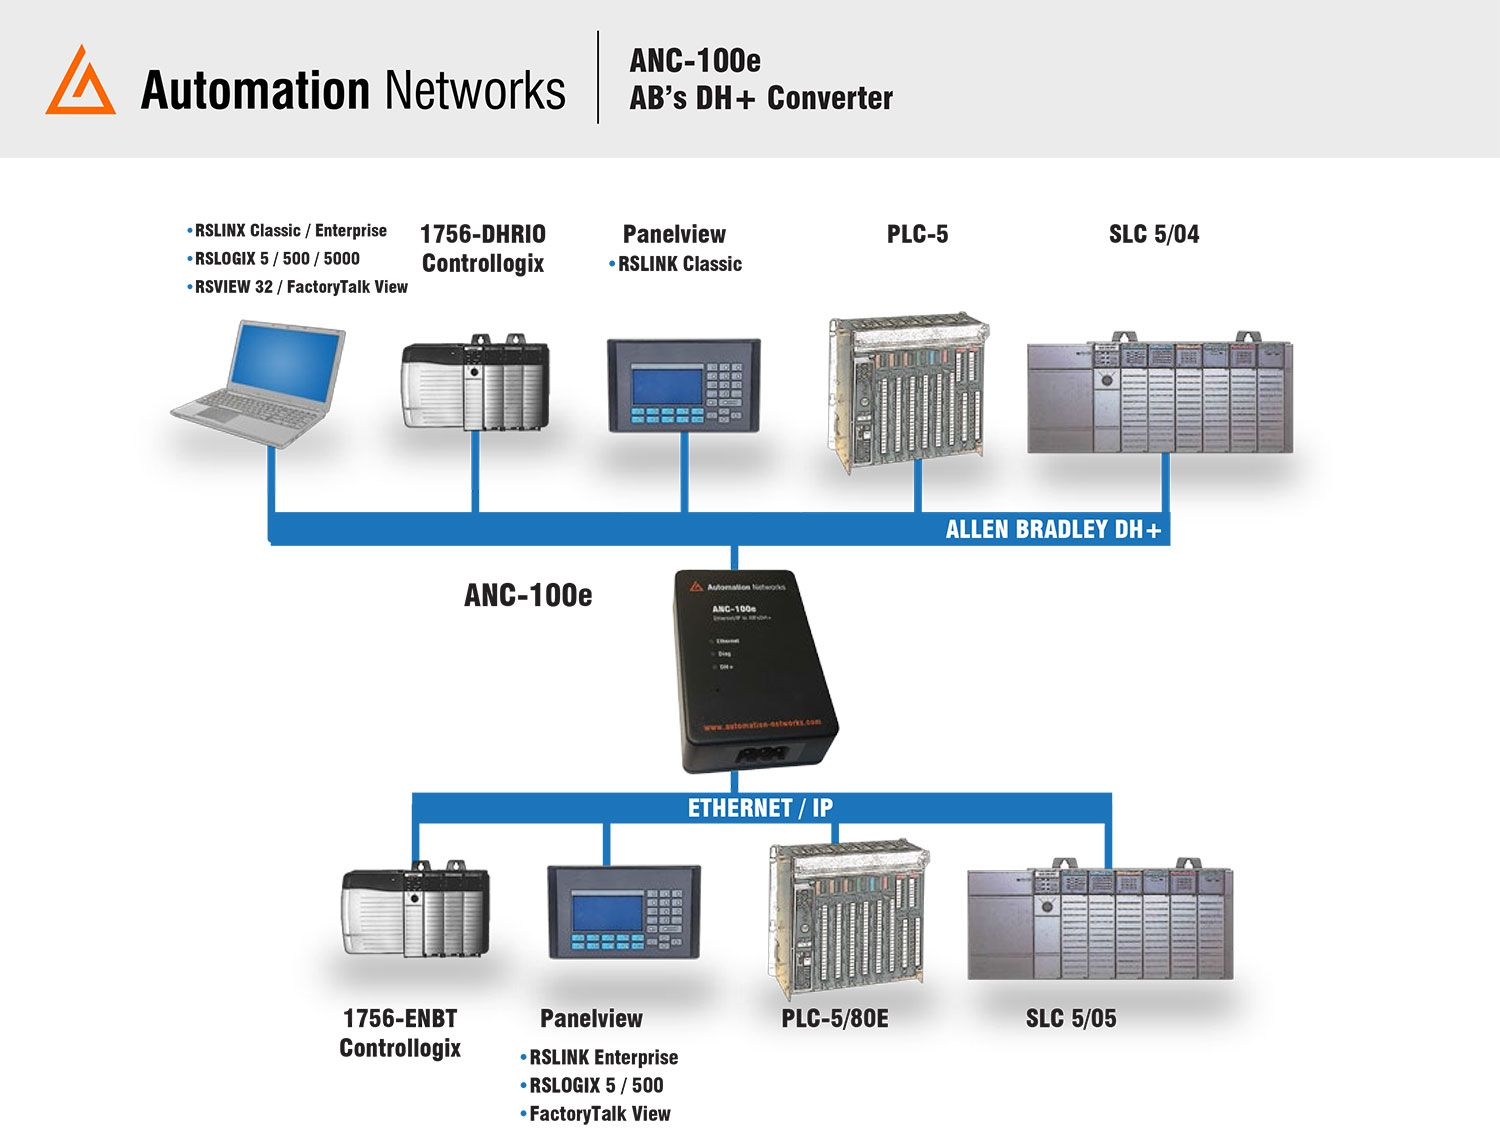 The ANC-100e communicates with all SCADA, HMI, PLC programming